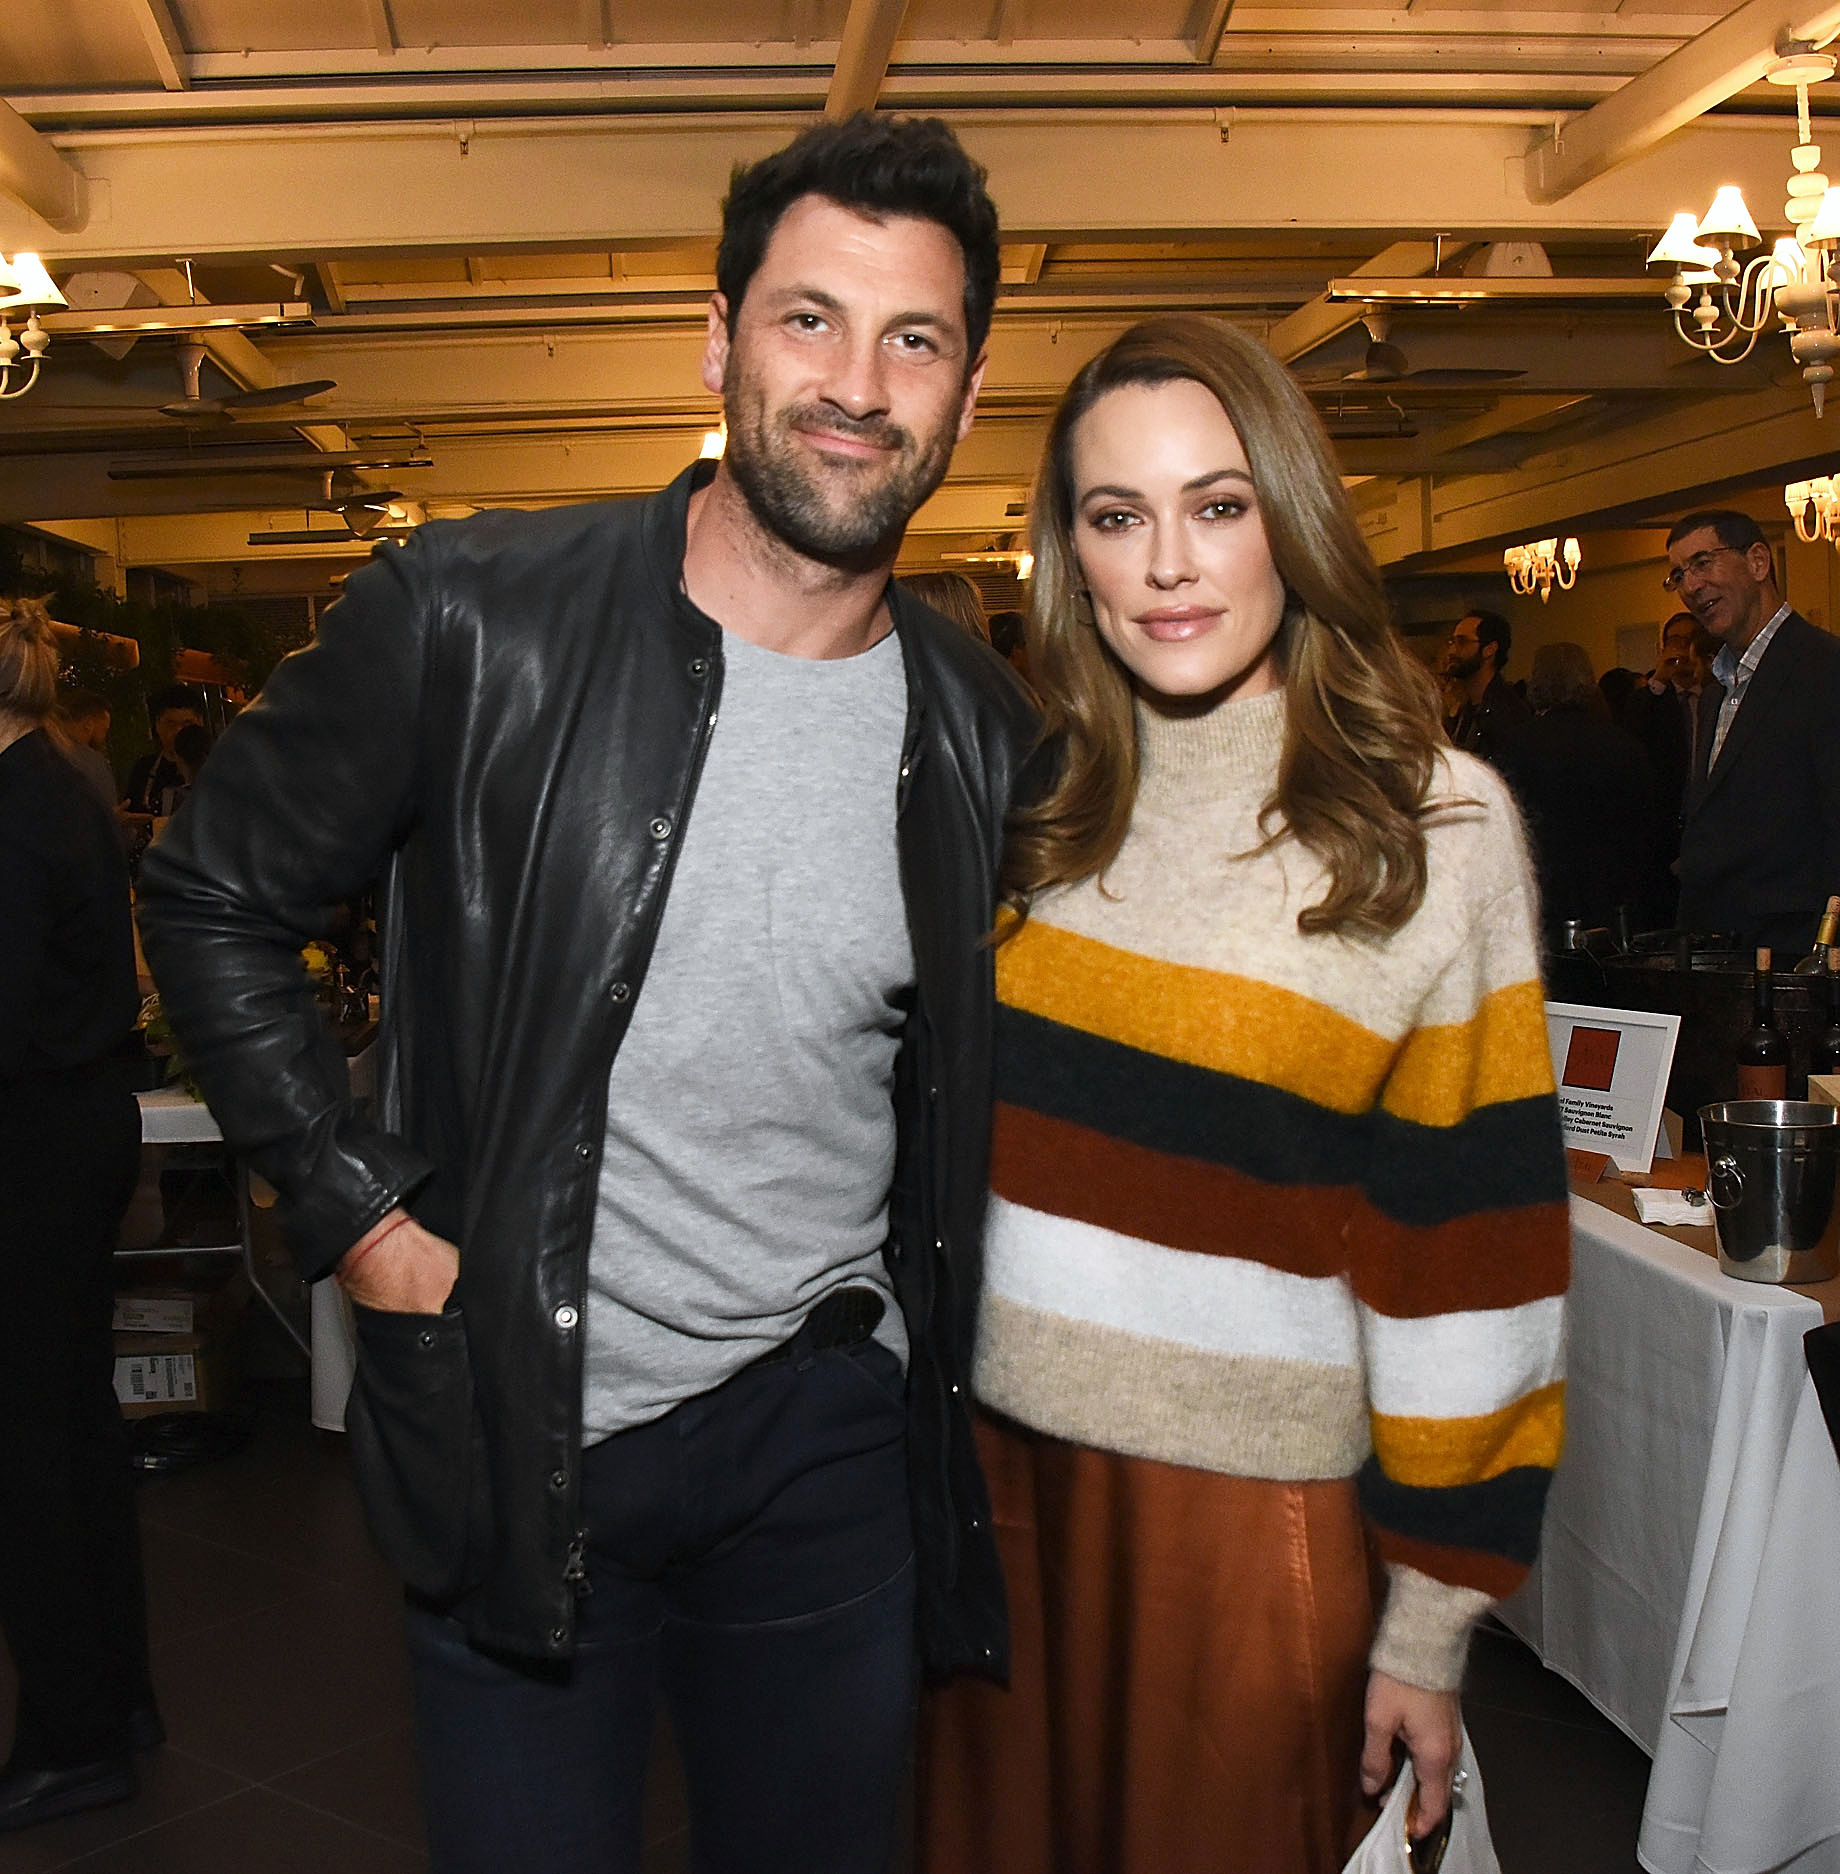 Peta Murgatroyd and Maksim Chmerkovskiy Grew Even Closer After Becoming Parents - Maks Chmerkovskiy and Peta Murgatroyd attend the March of Dimes Signatures Chefs Auction Los Angeles on October 11, 2018 in Beverly Hills, California.